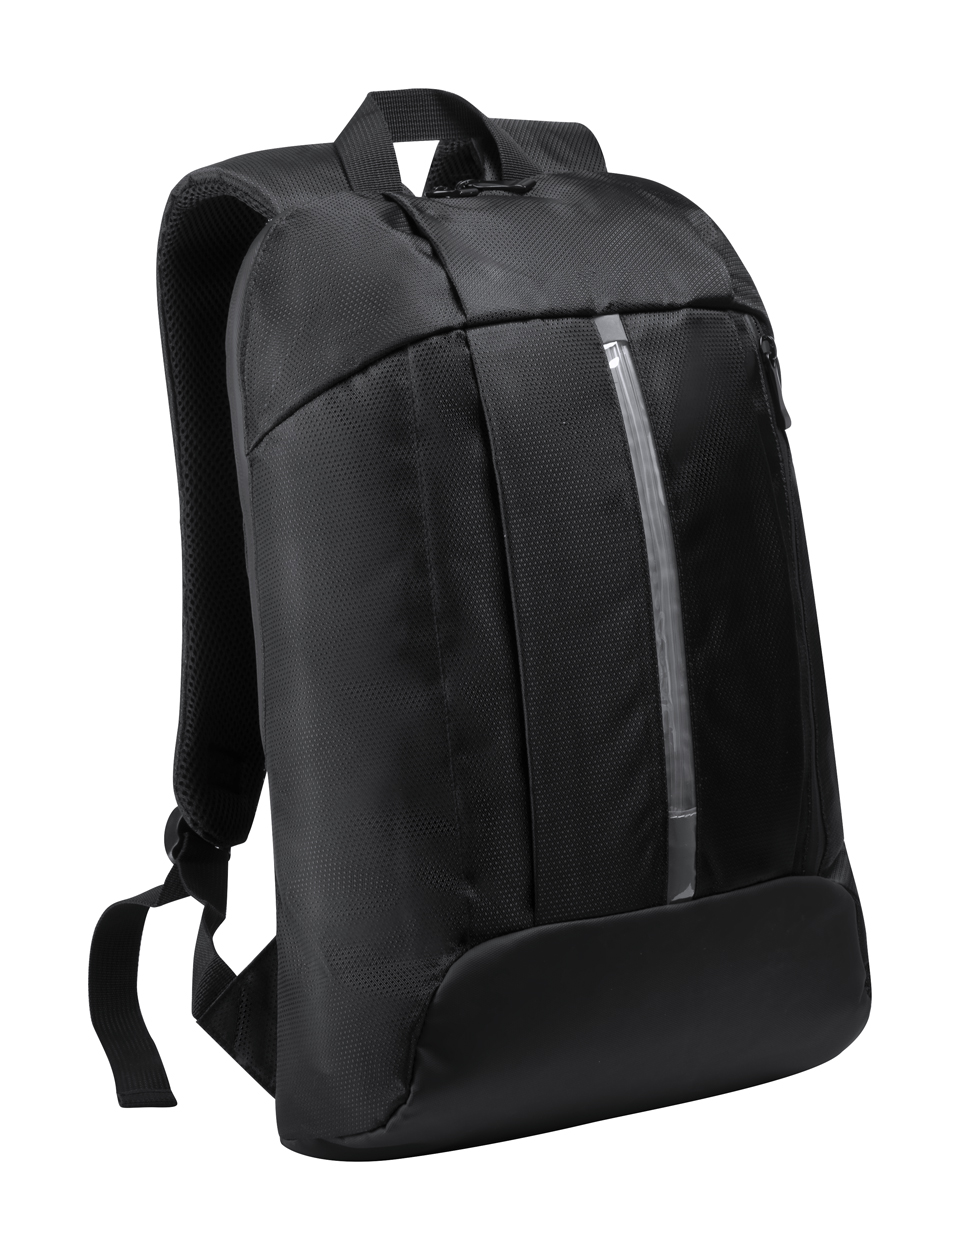 Dontax backpack